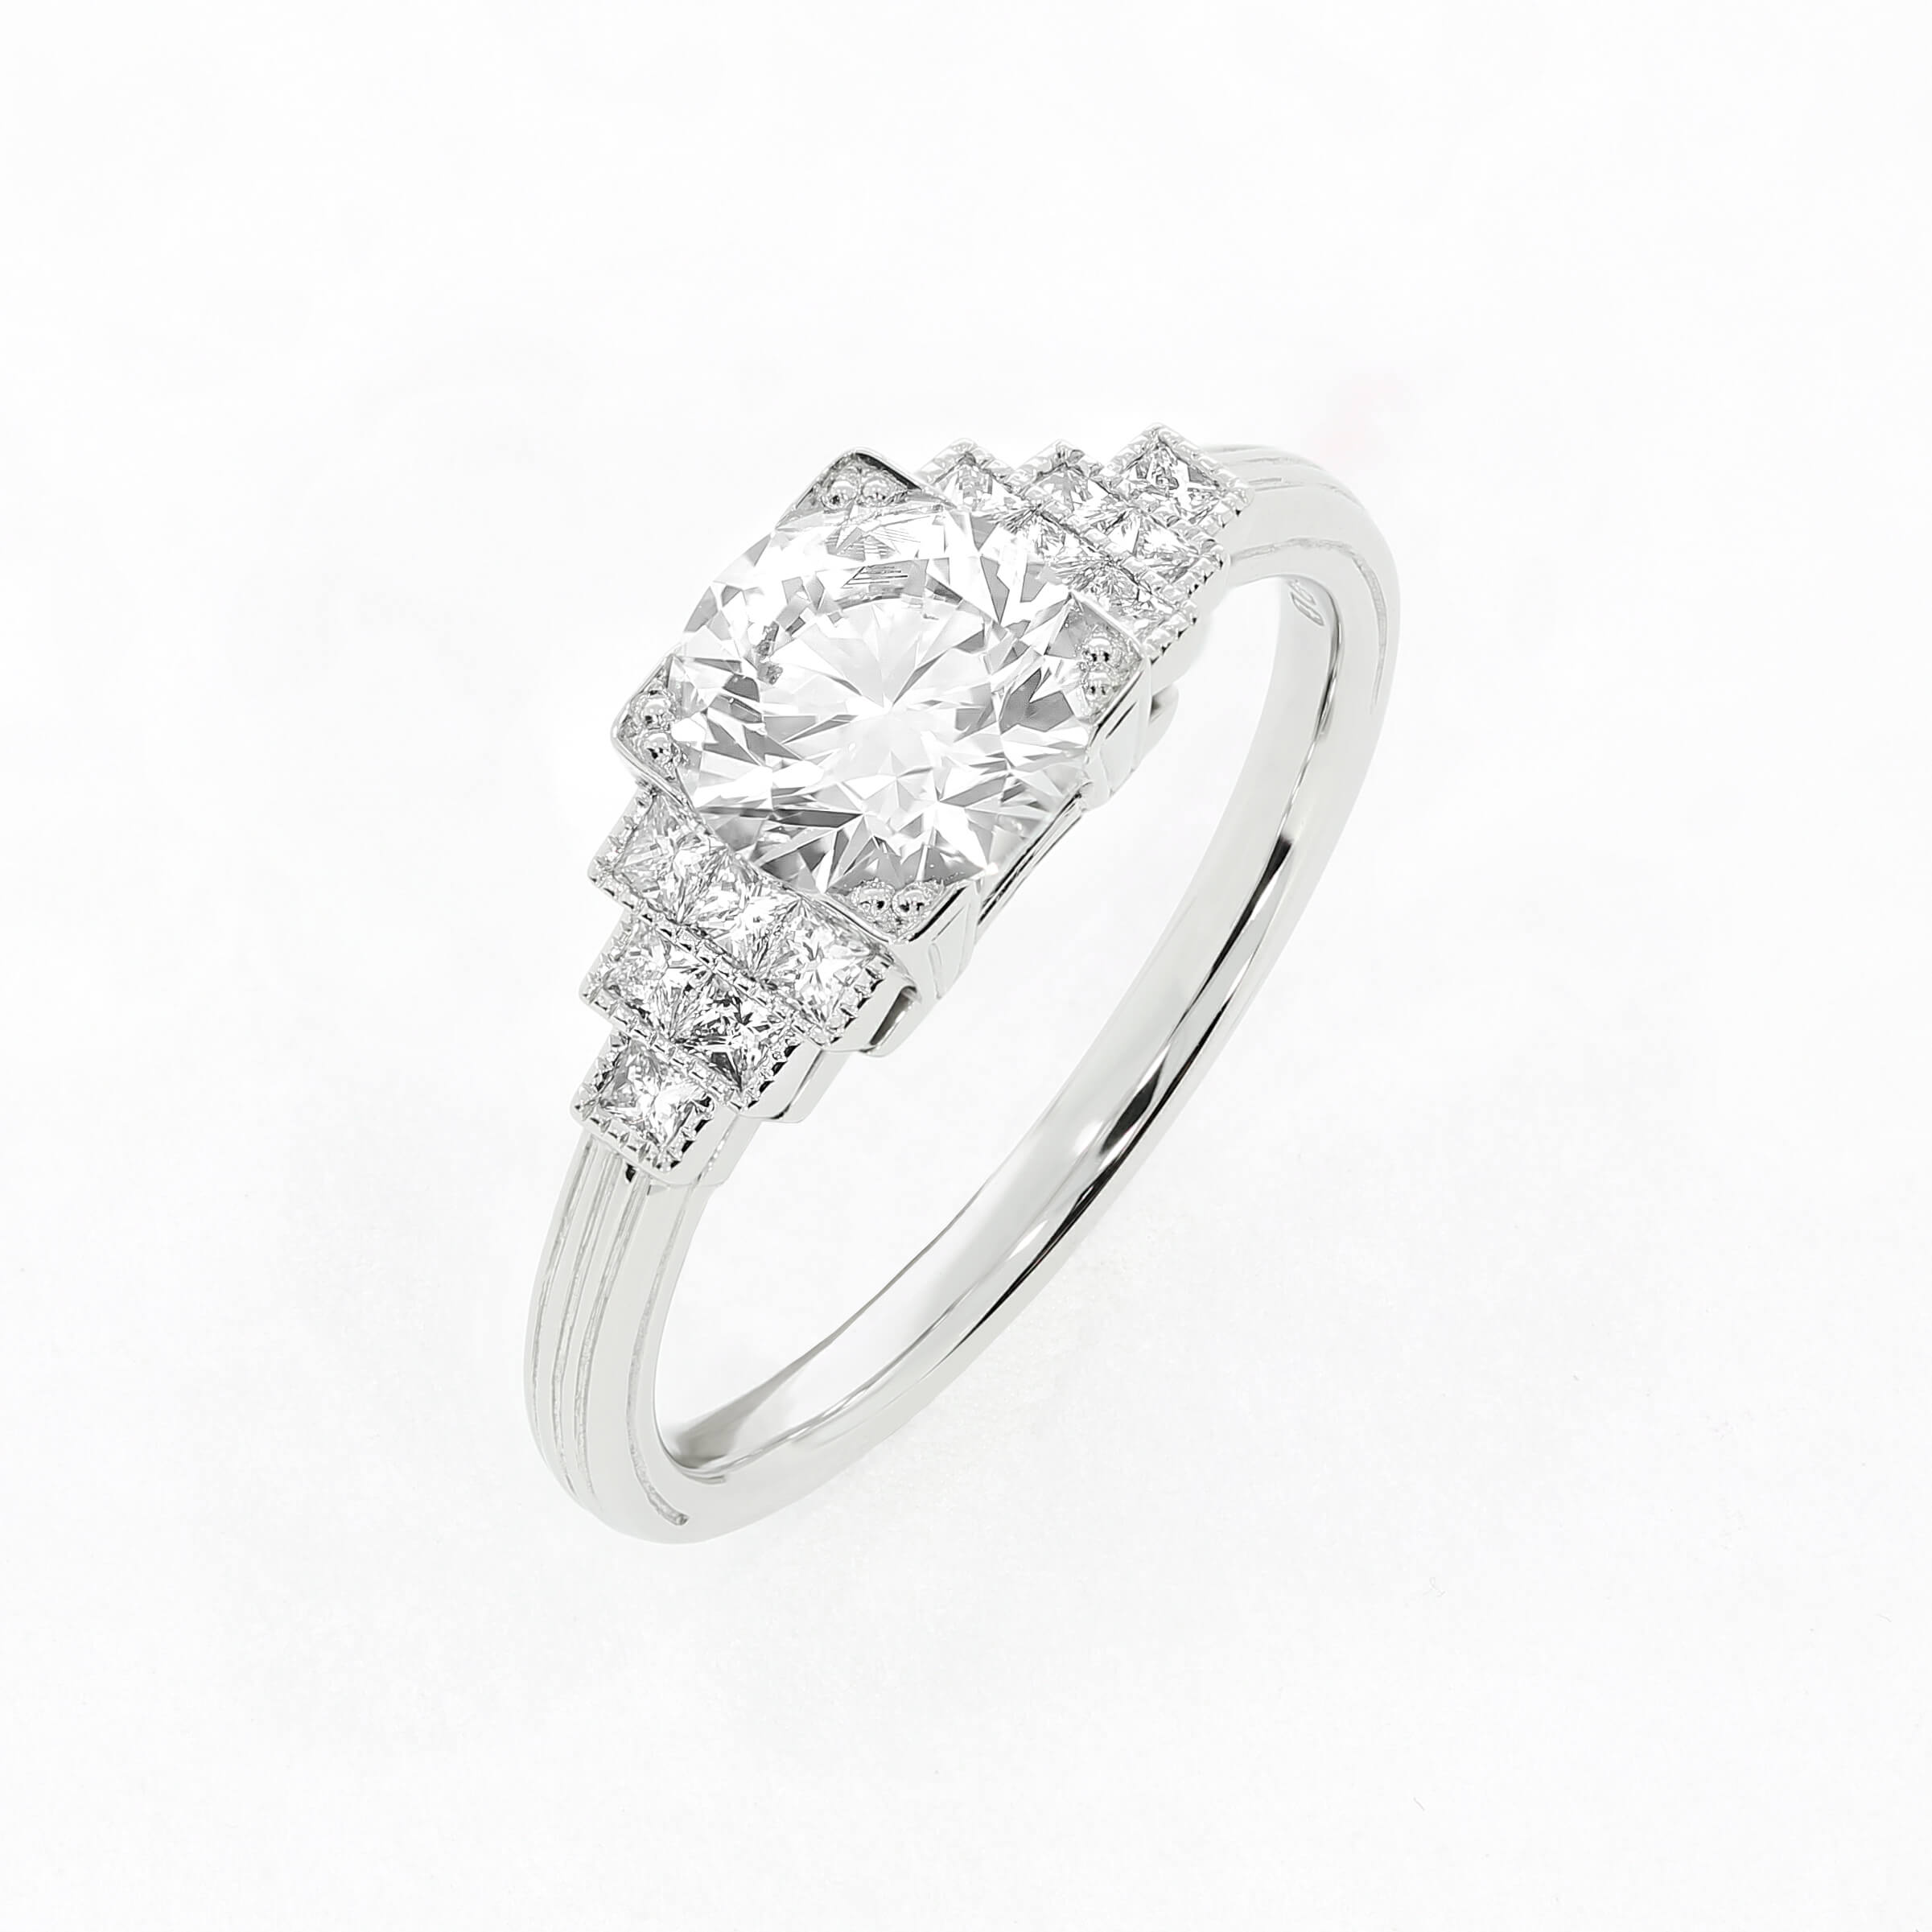 Art Deco bridal jewellery never goes out of style. Vintage-inspired  bespoke engagement ring by Queensmith